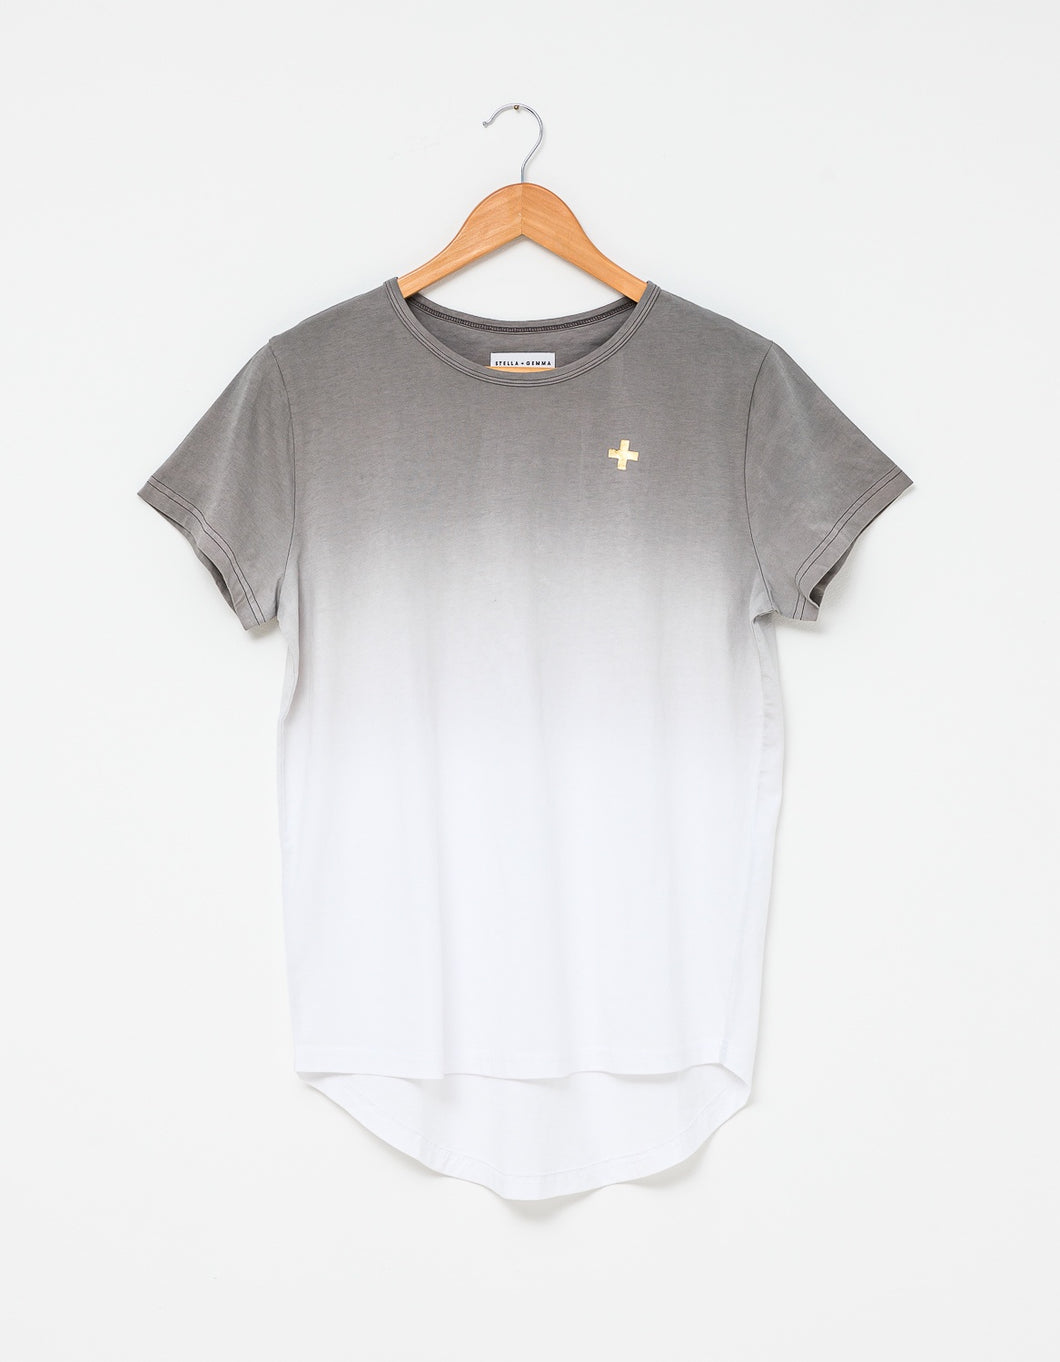 Stella + Gemma Tee - Ombre Charcoal